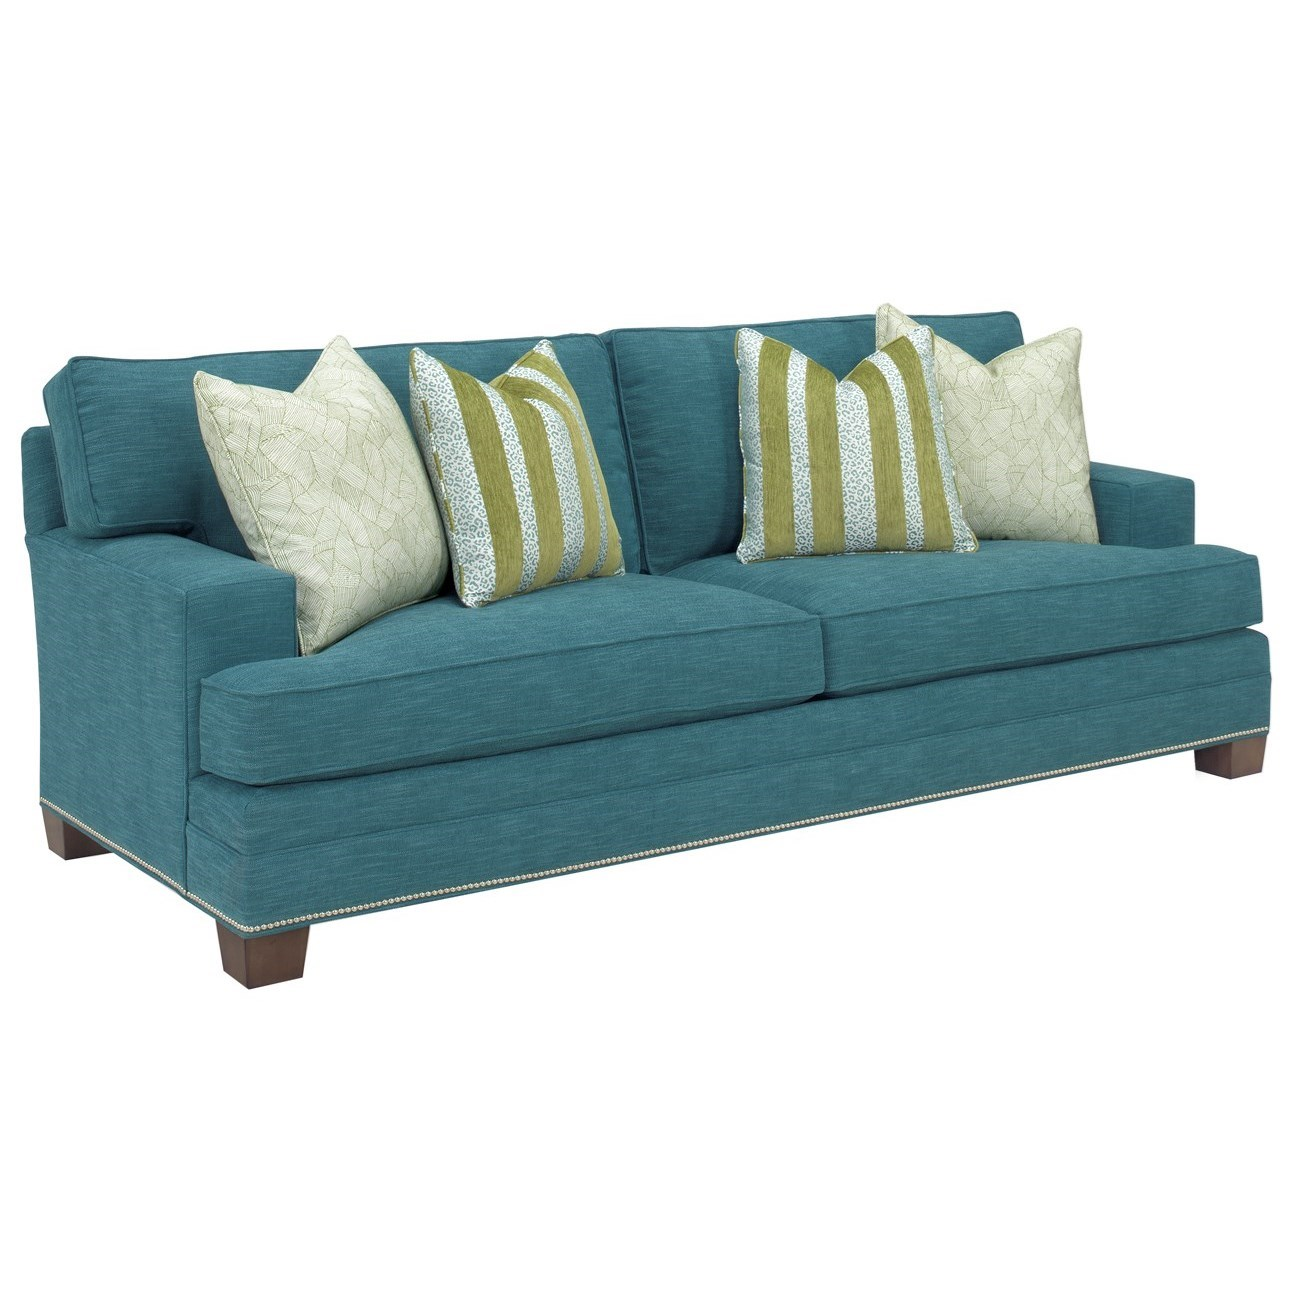 Personal Design Series Townsend Customizable Sofa by Lexington at Baer's Furniture